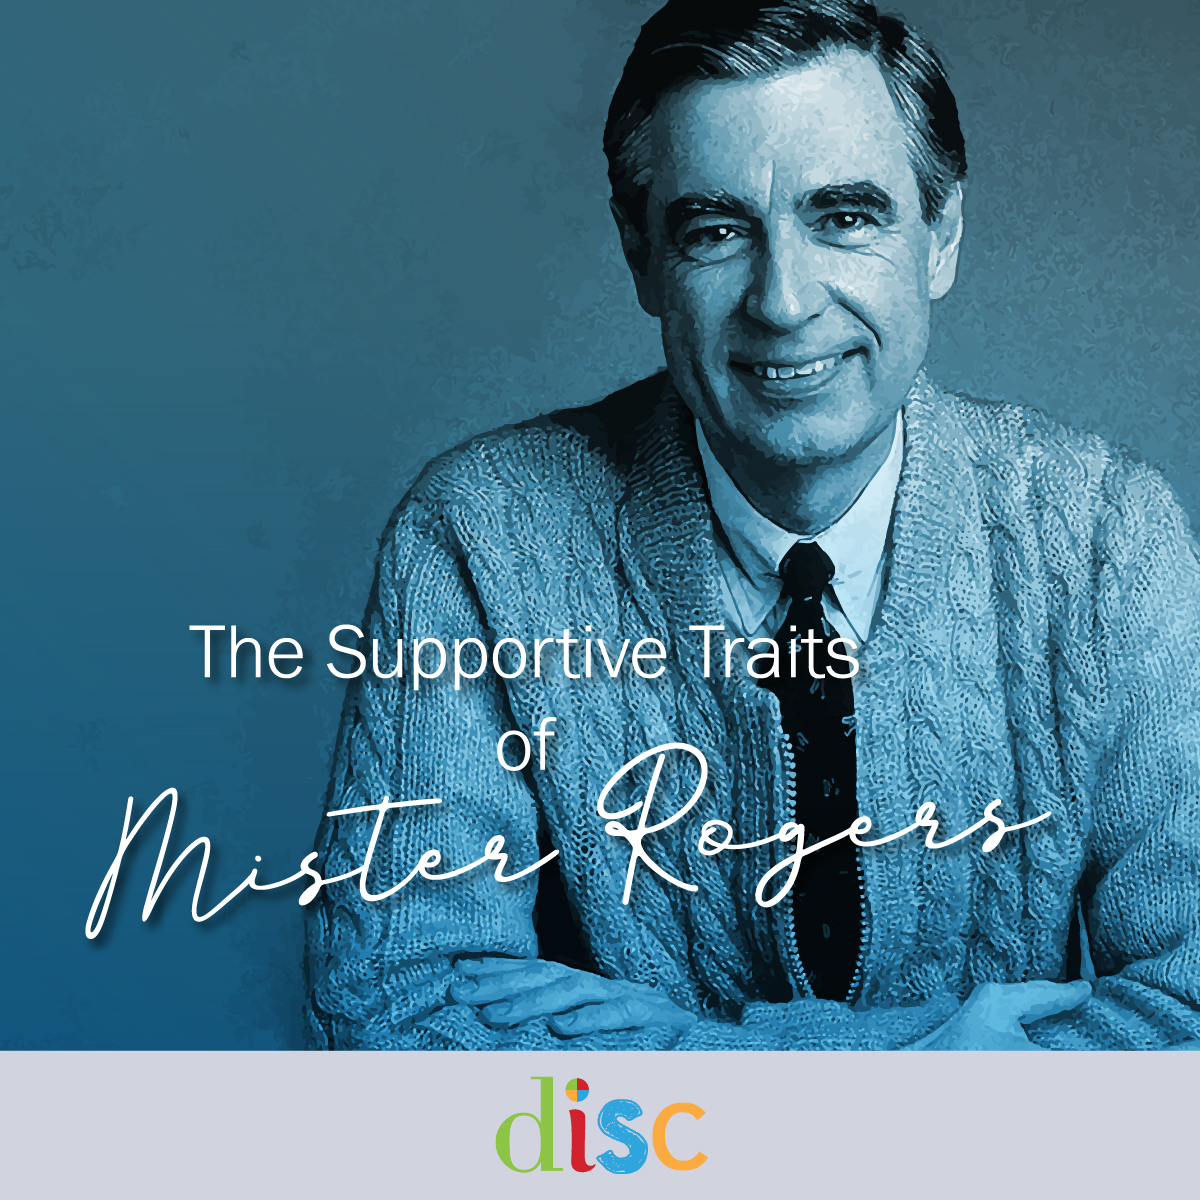 DISC Mister Rogers